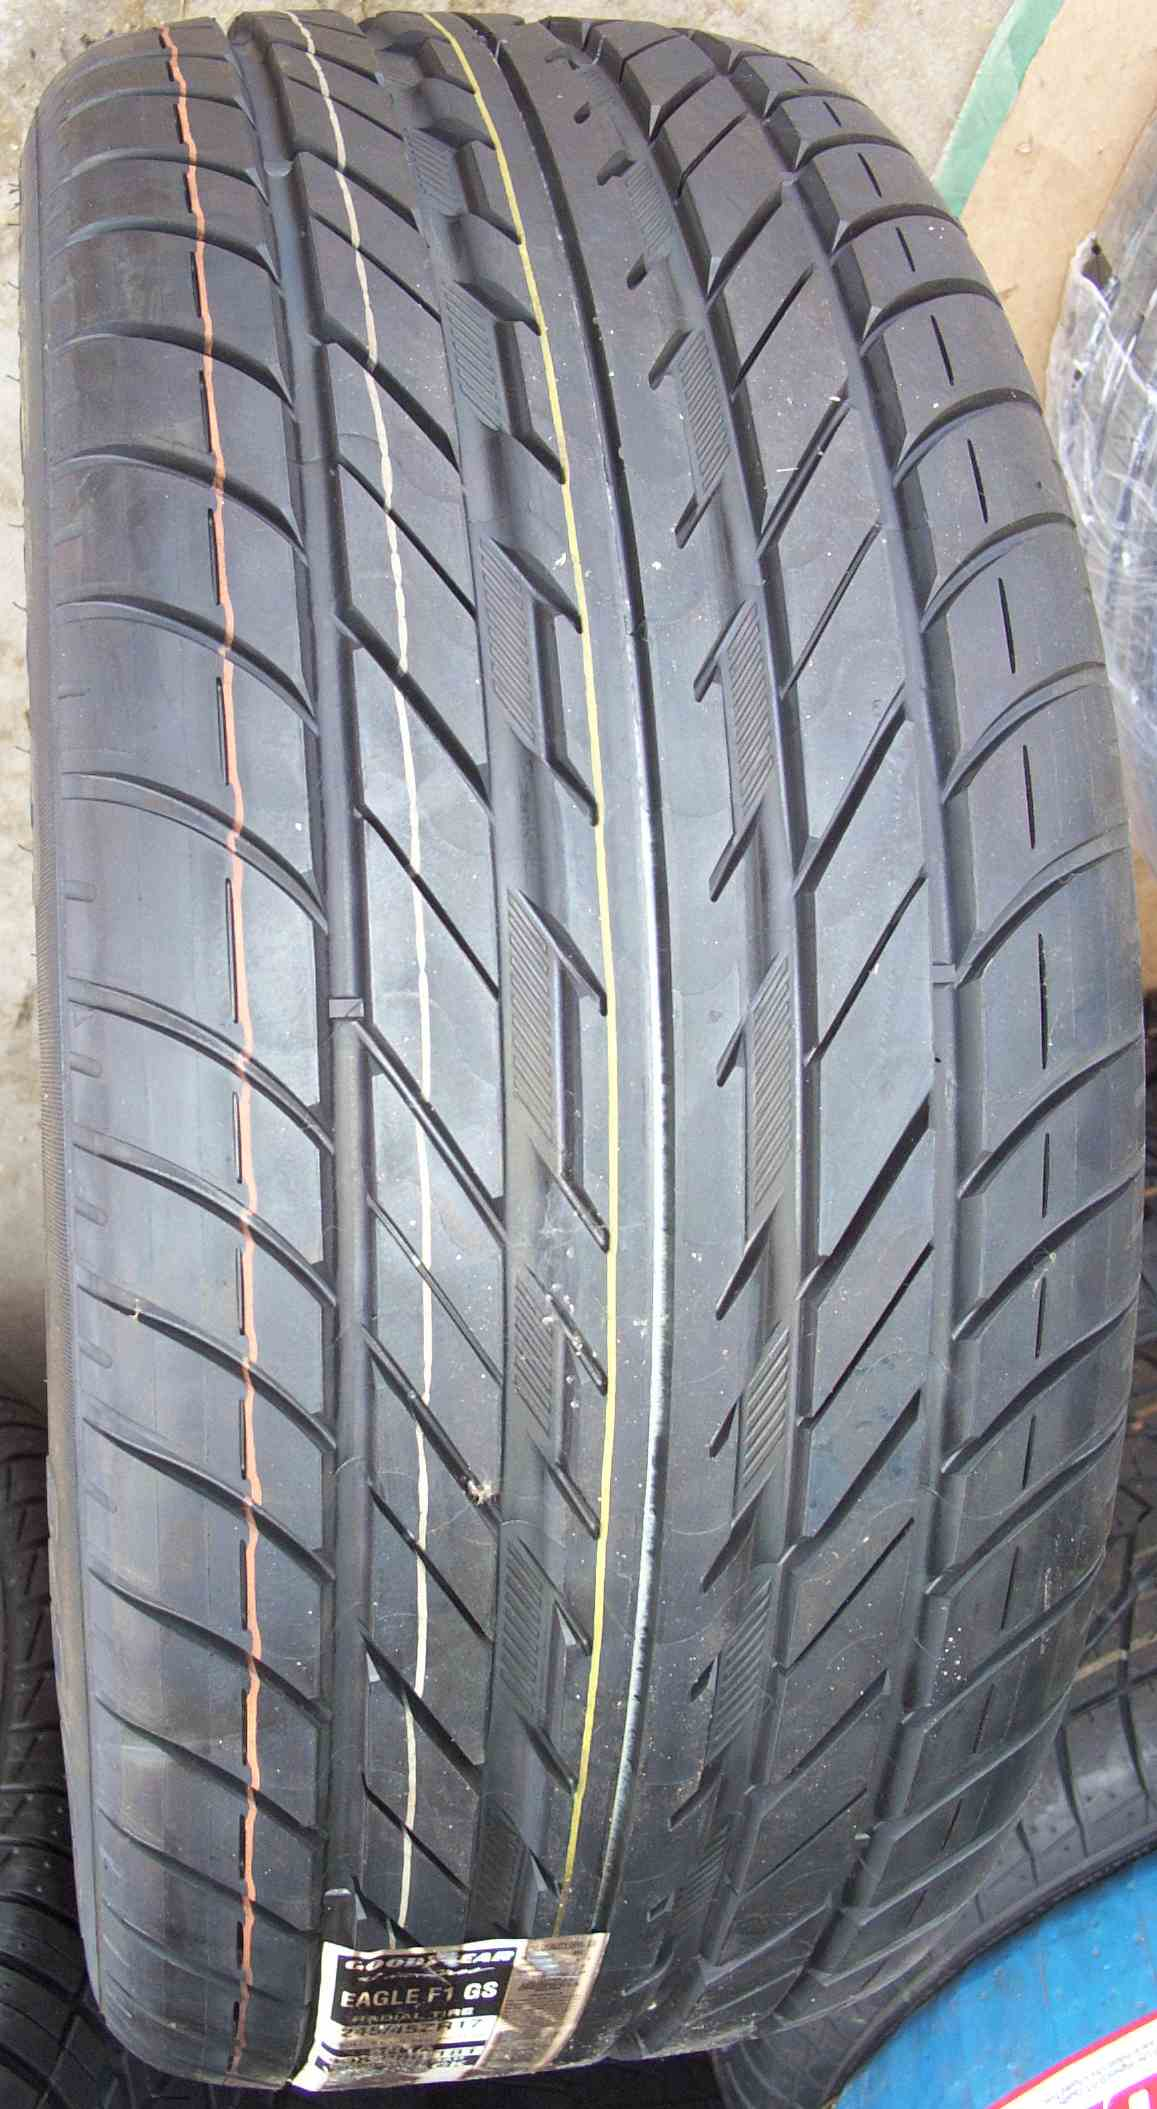 eagle goodyear p245 45zr17 performance tire tires campbell